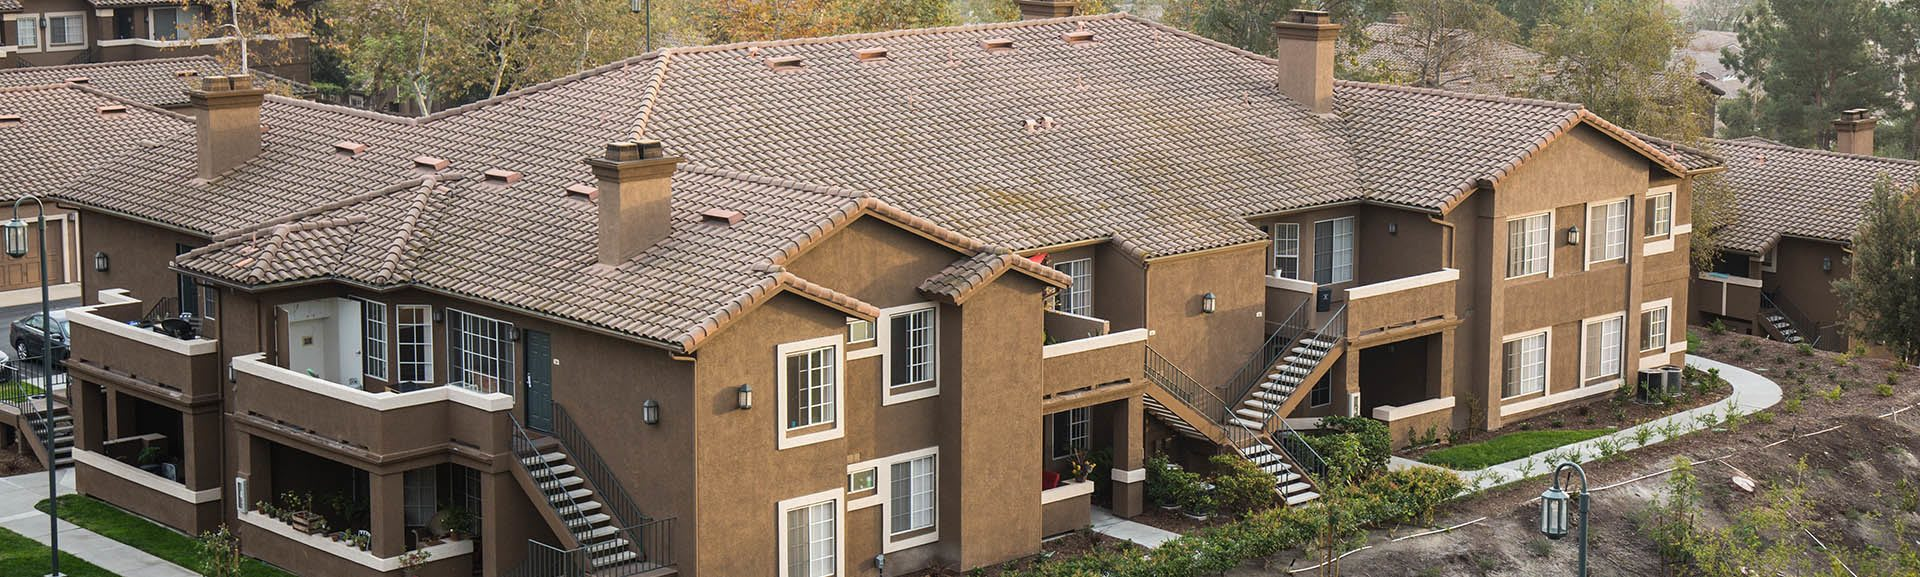 Learn about our neighborhood at Paloma Summit Condominium Rentals in Foothill Ranch, California on our website